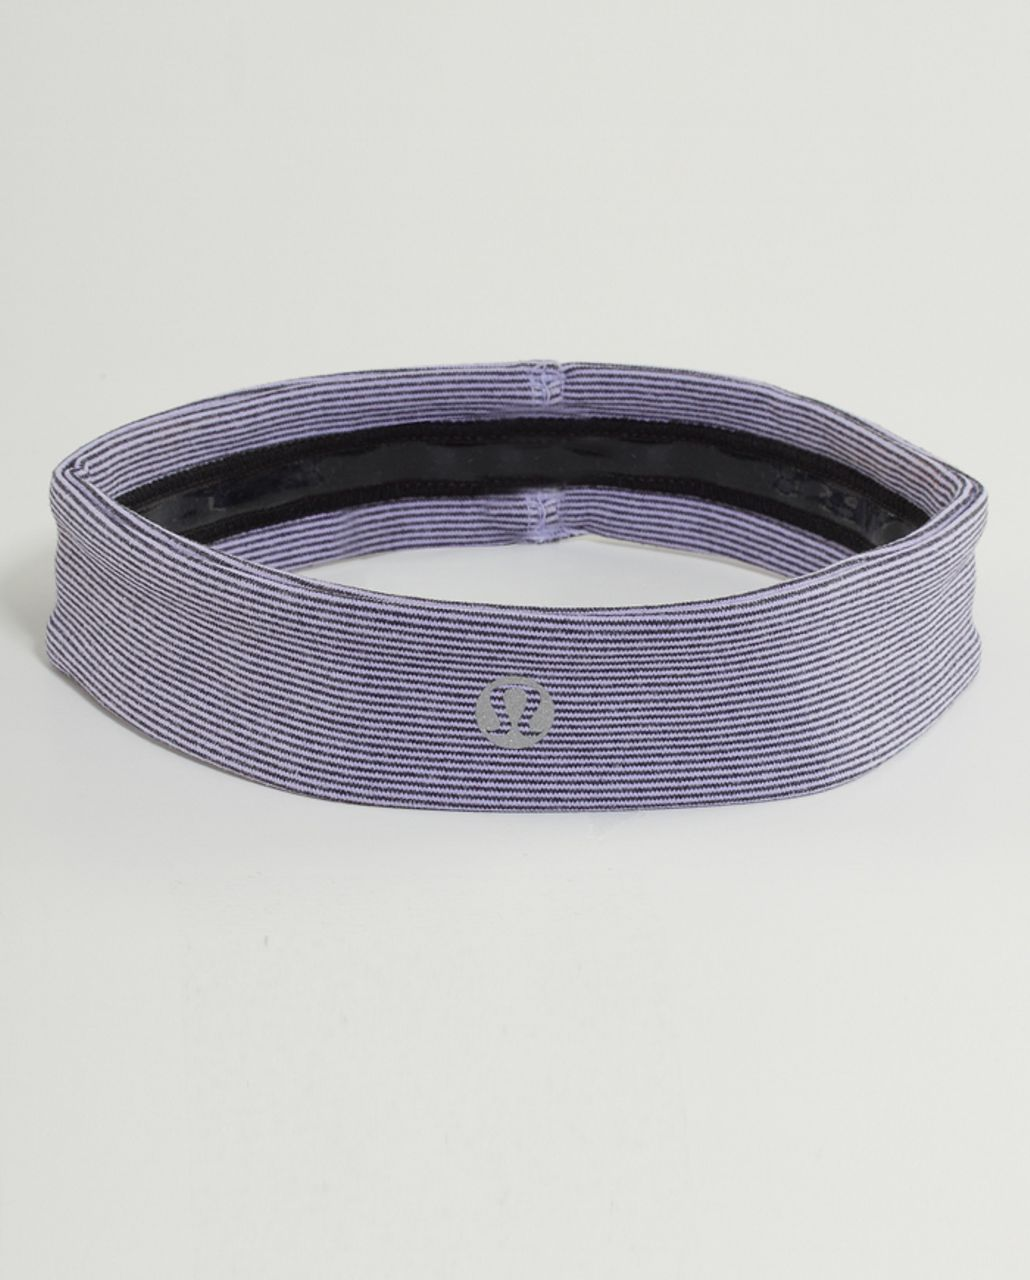 Lululemon Slipless Headband - Lilac Heathered Coal Wee Stripe